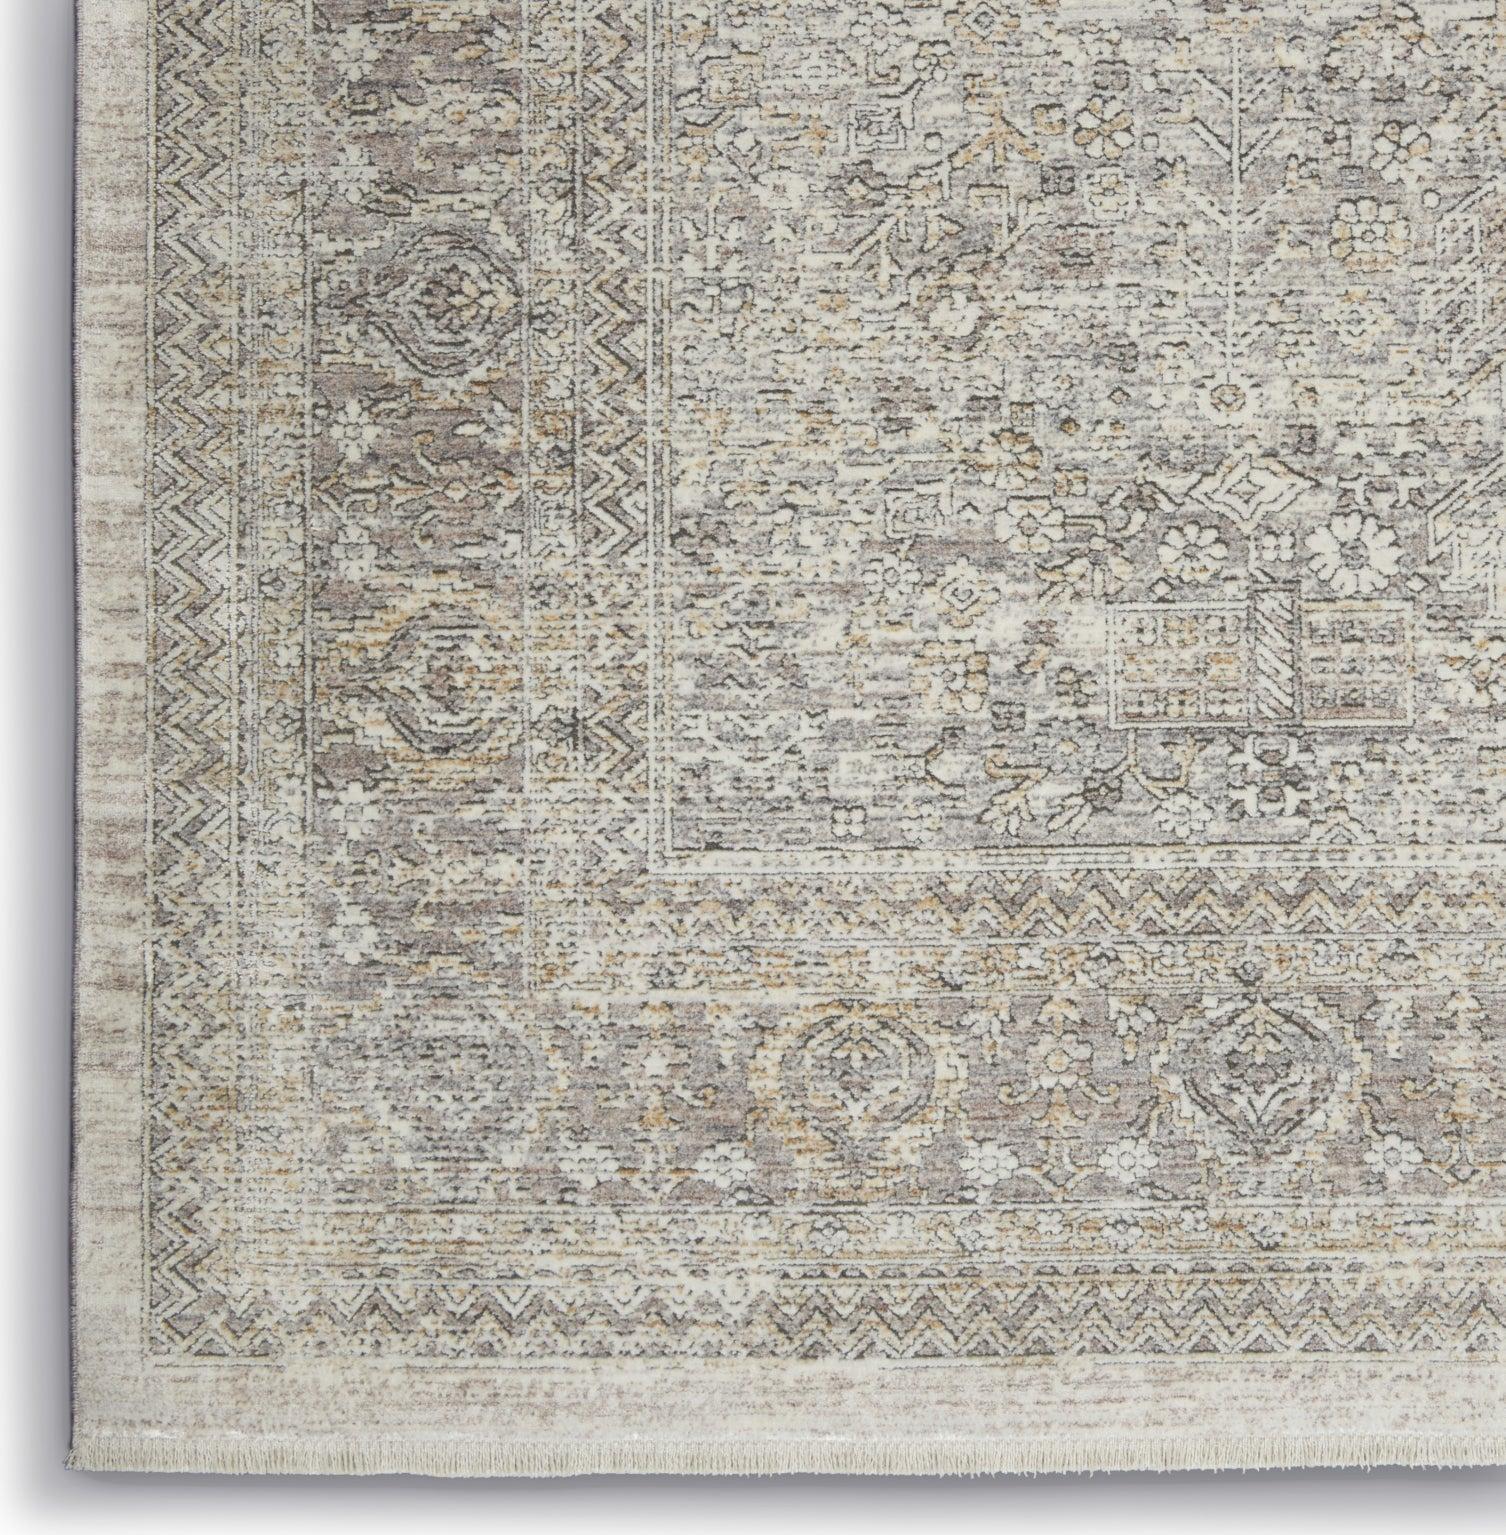 Starry Nights STN04 Cream Grey Area Rug by Nourison Corner Image